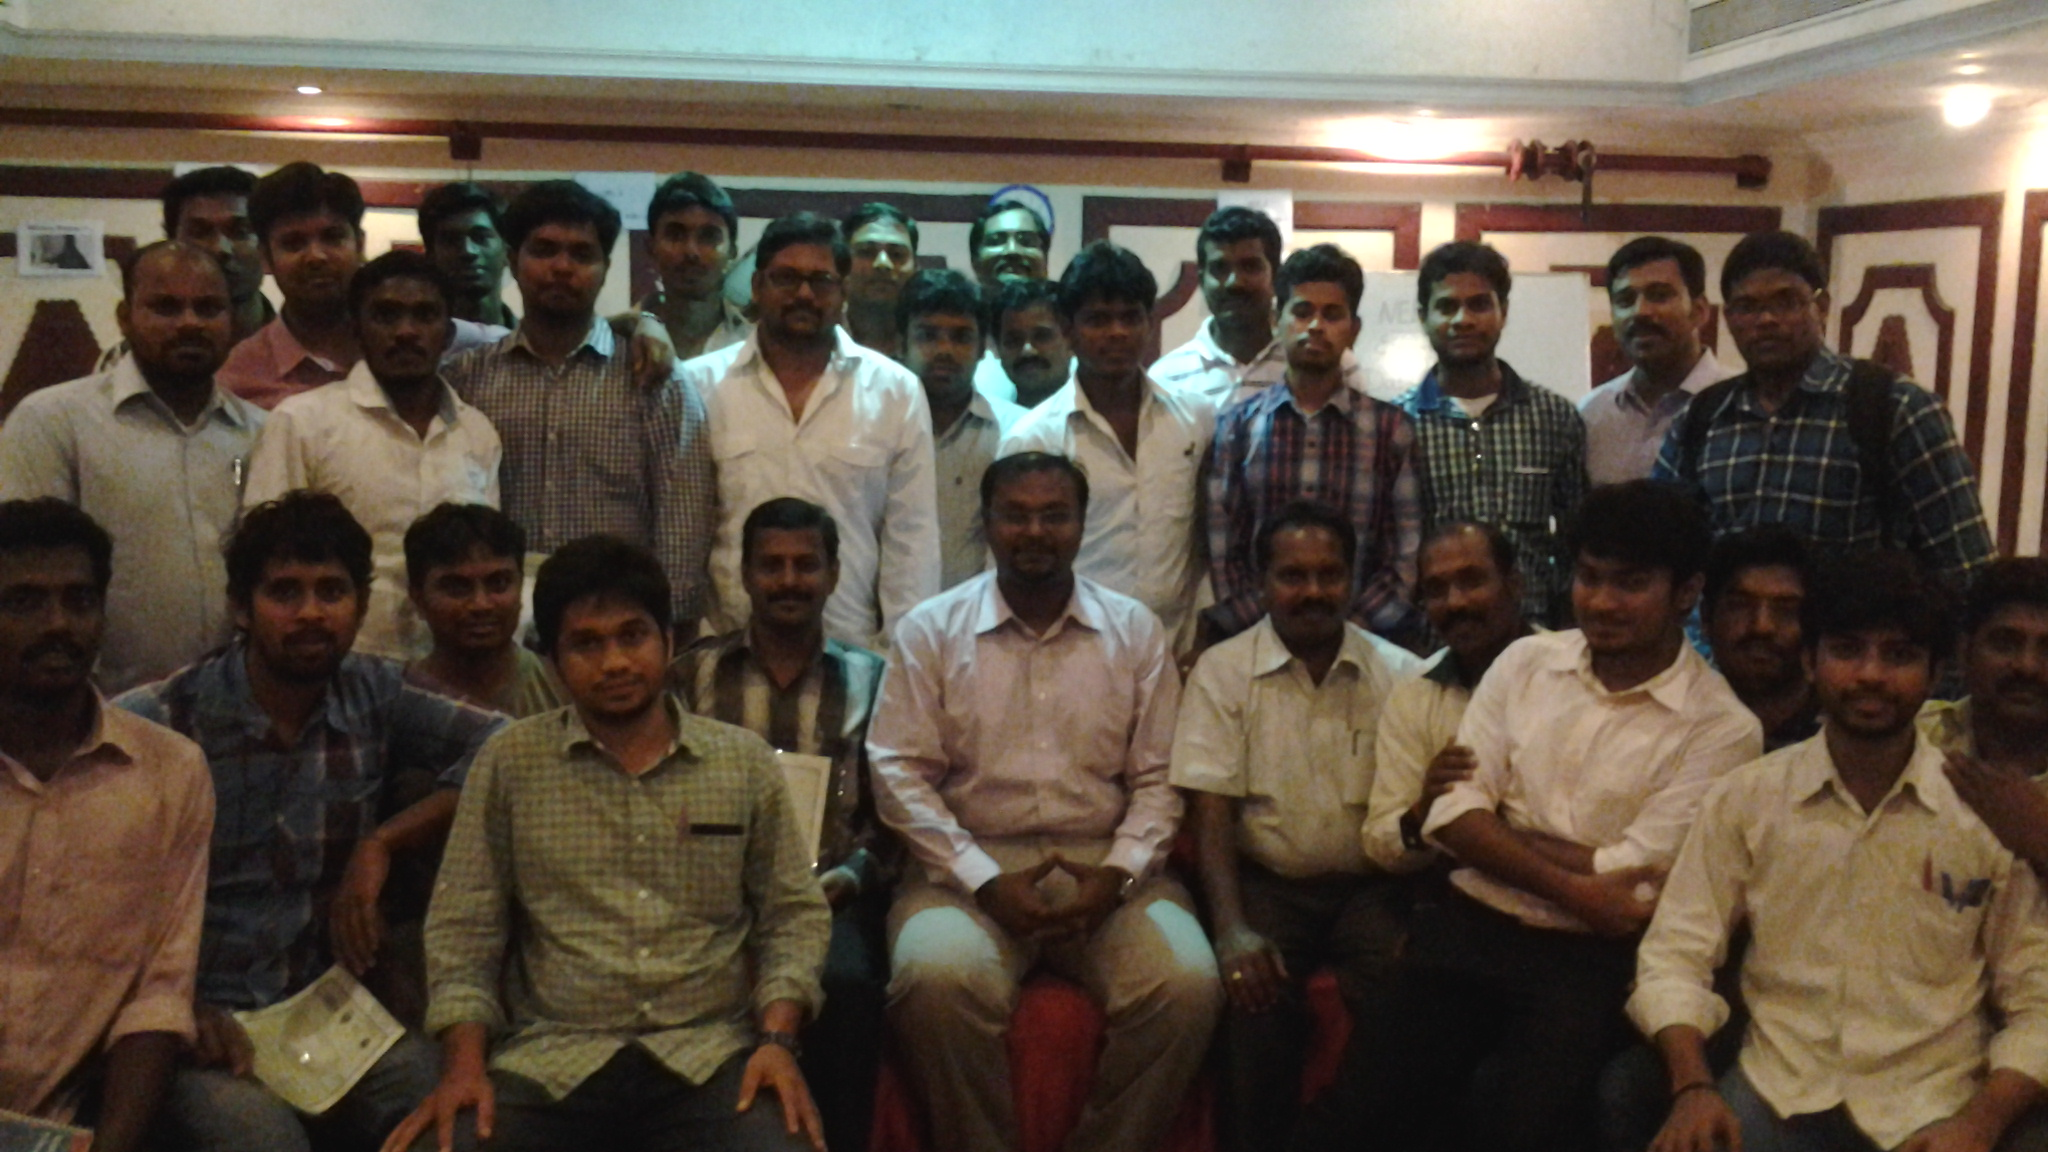 NEBOSH IGC session was successfully completed at Chennai with 28